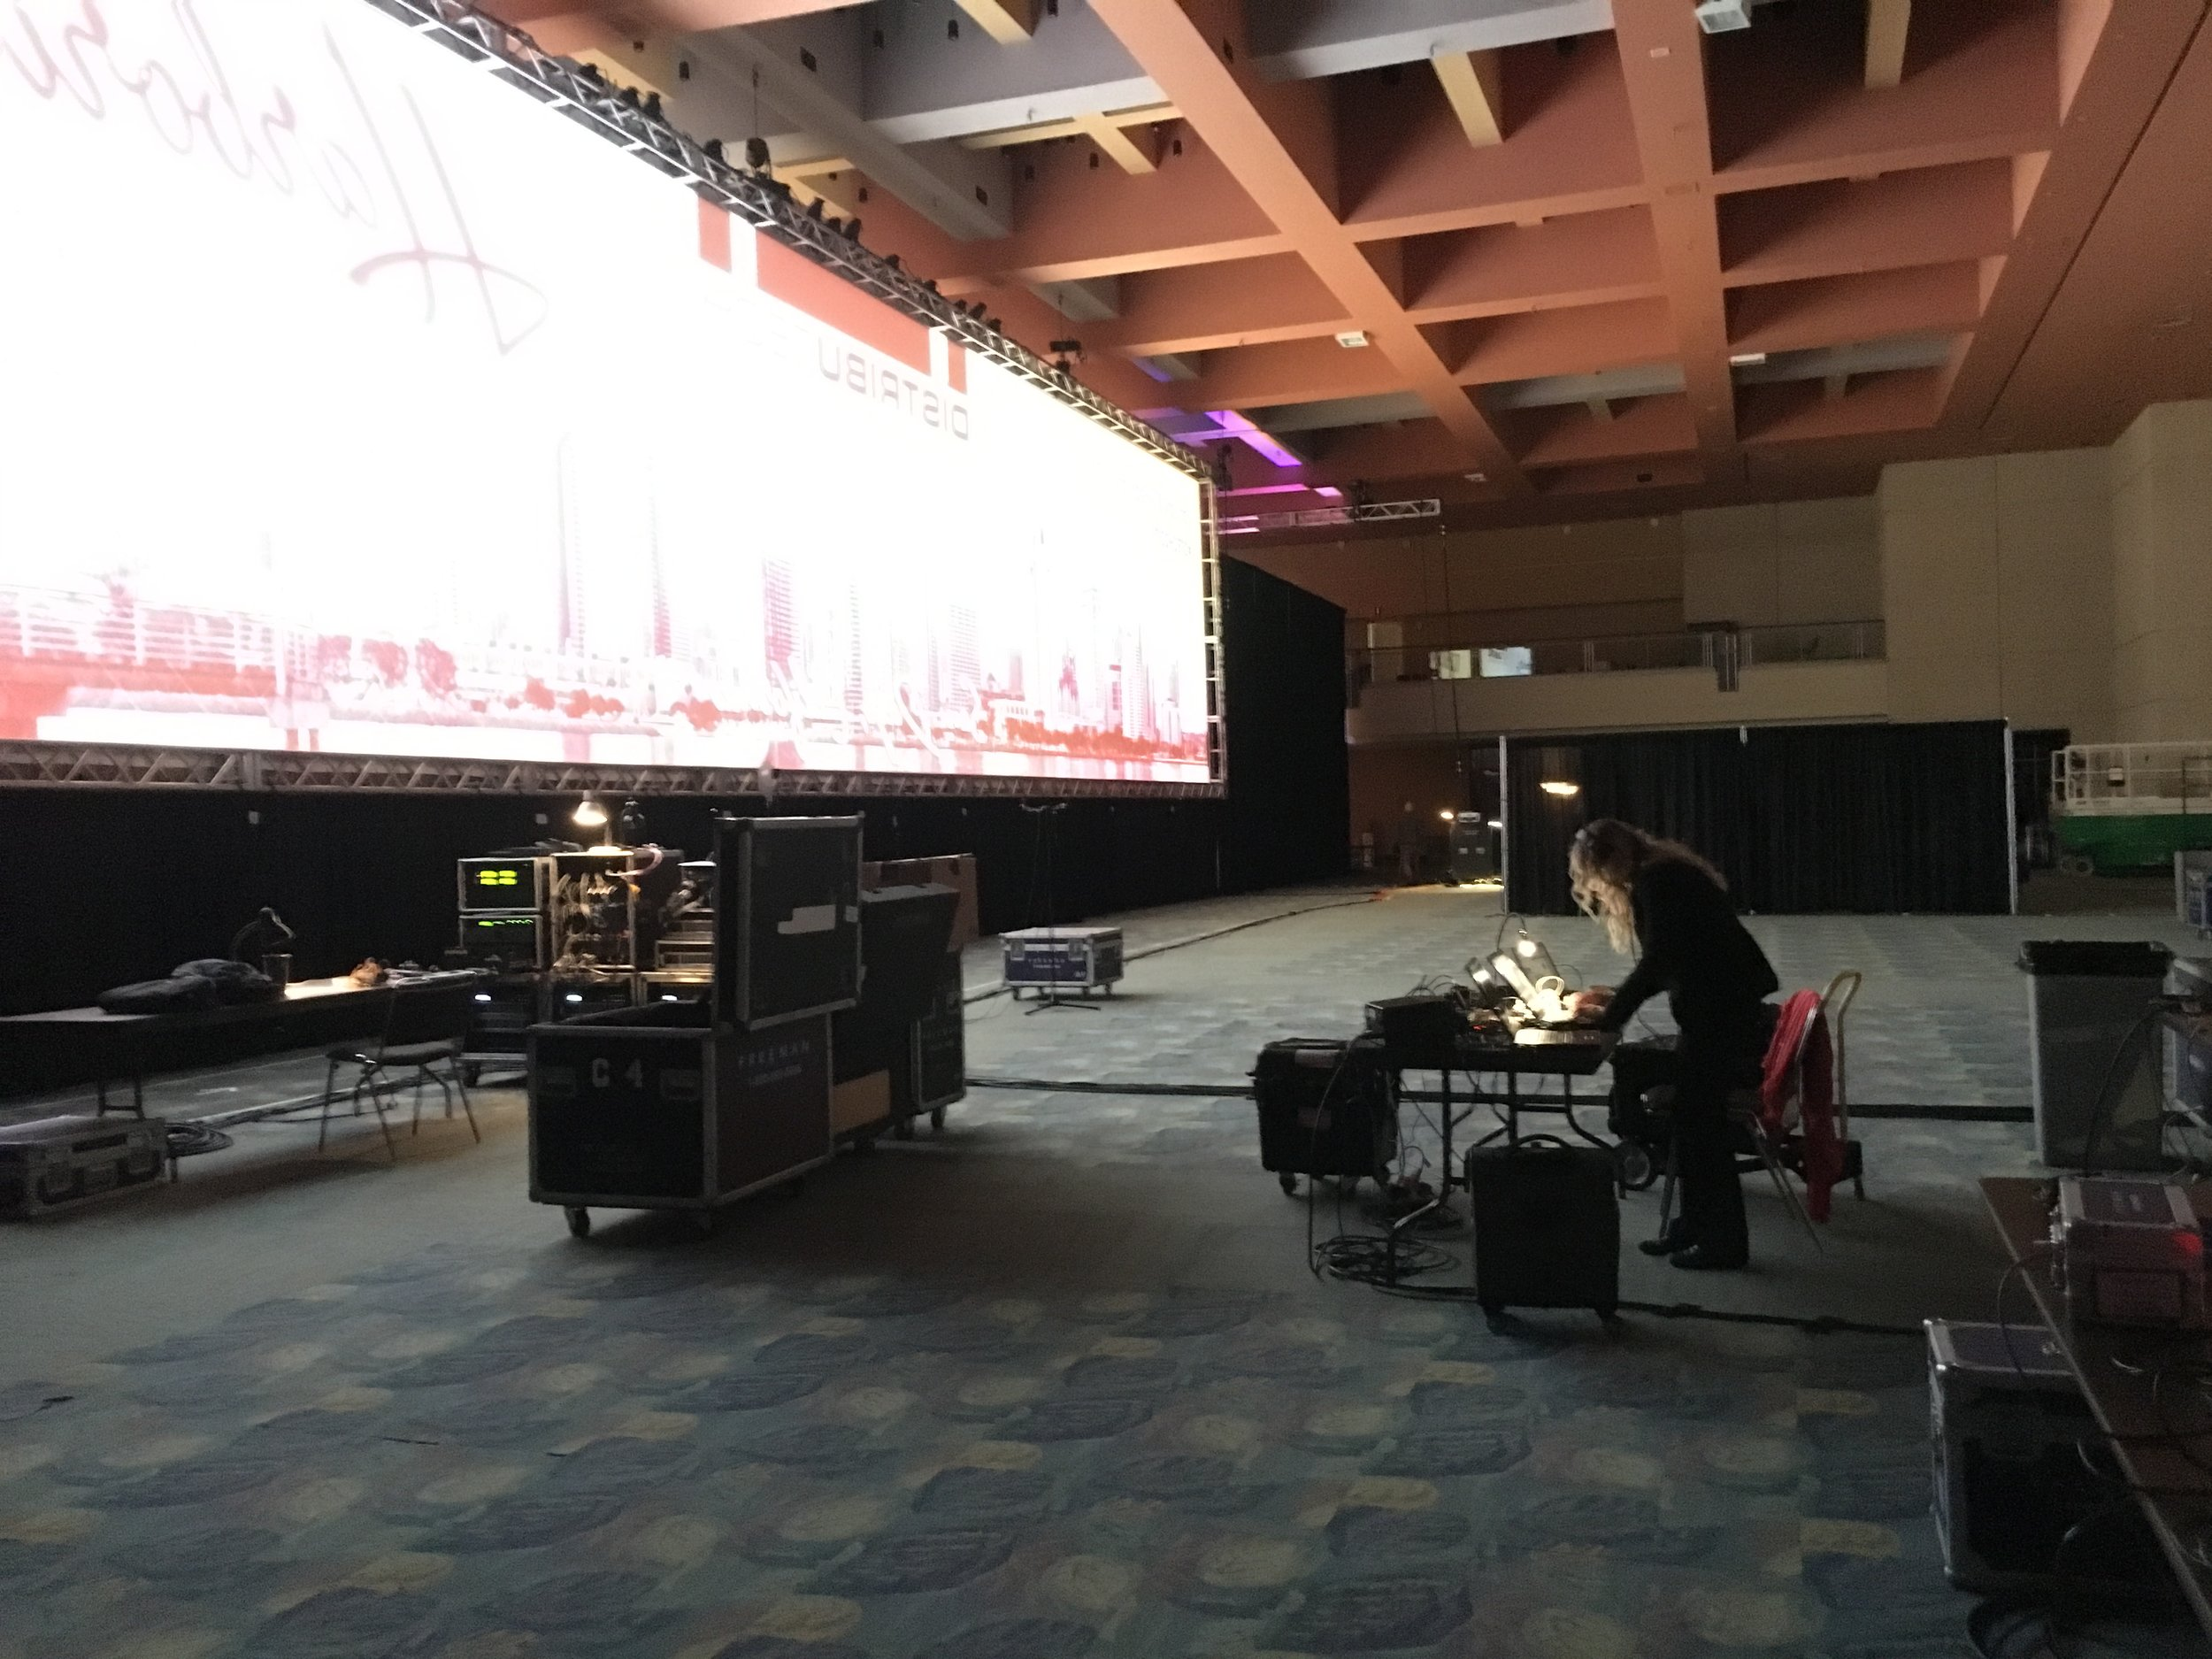 A peek backstage, wow that screen is huge!  We share backstage space with Freeman, a highly respected company in the event industry.  They are providing all AV/Production services for our clients and are great to work with.